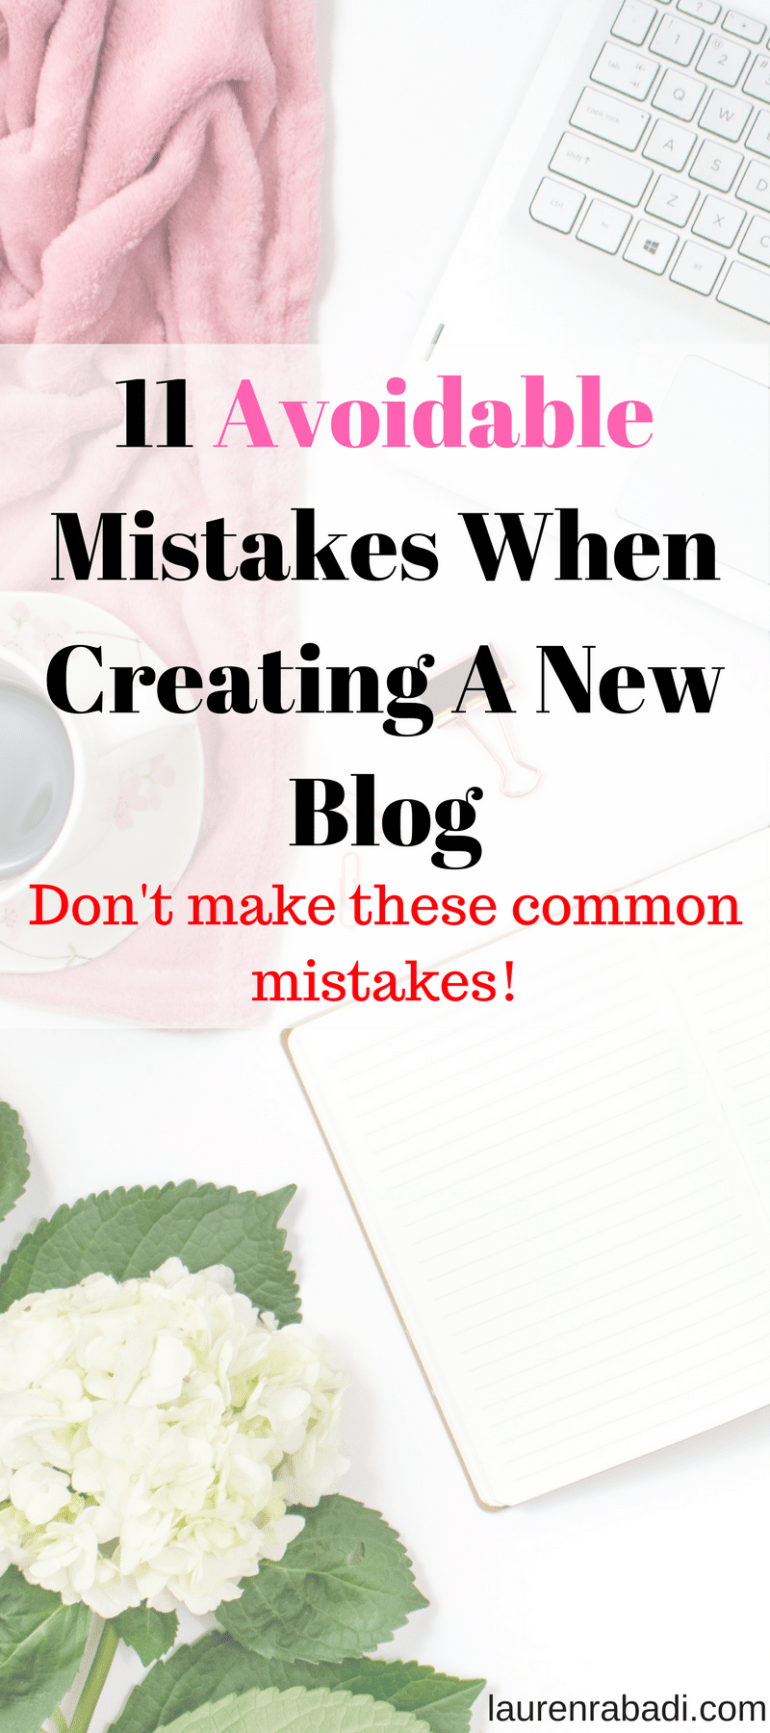 11 Avoidable Mistakes When Creating A New Blog